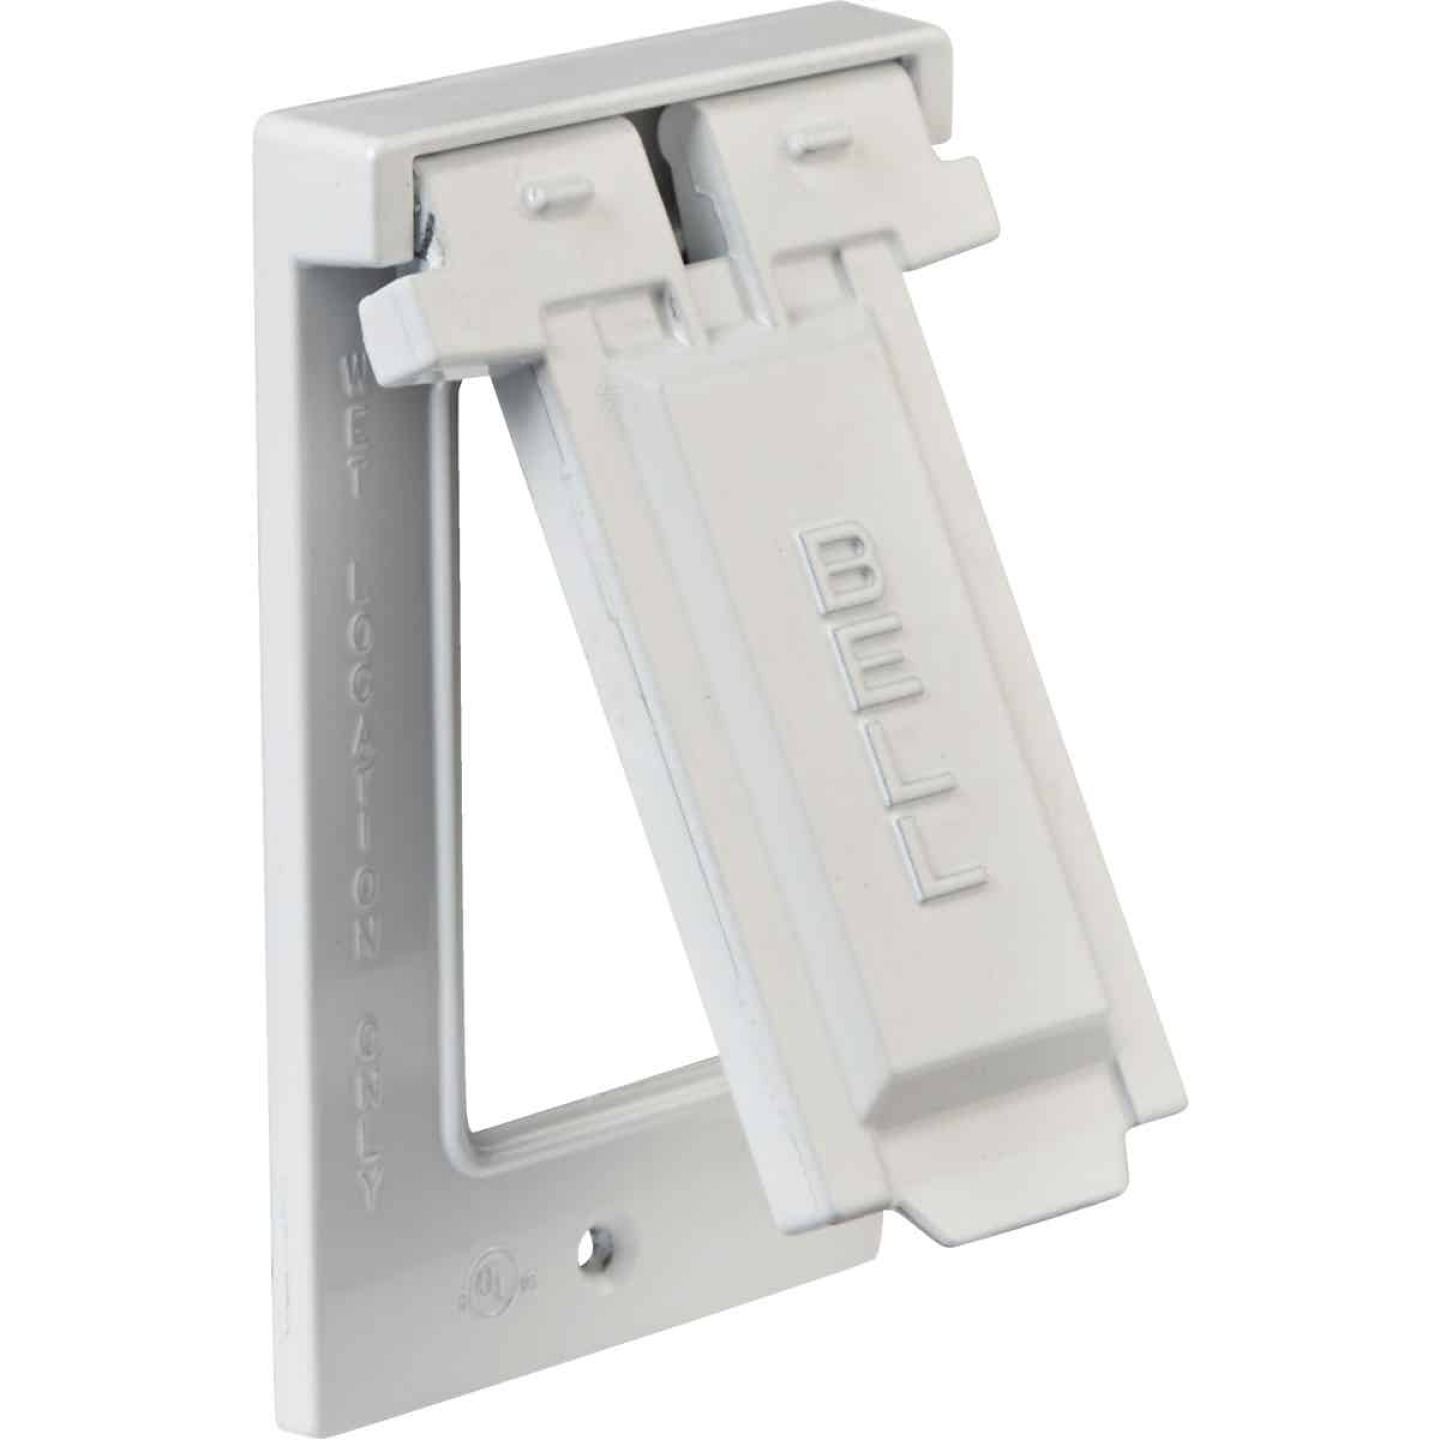 Bell Single Gang Vertical Mount Die-Cast Metal White Weatherproof GFCI Outdoor Outlet Cover Image 3